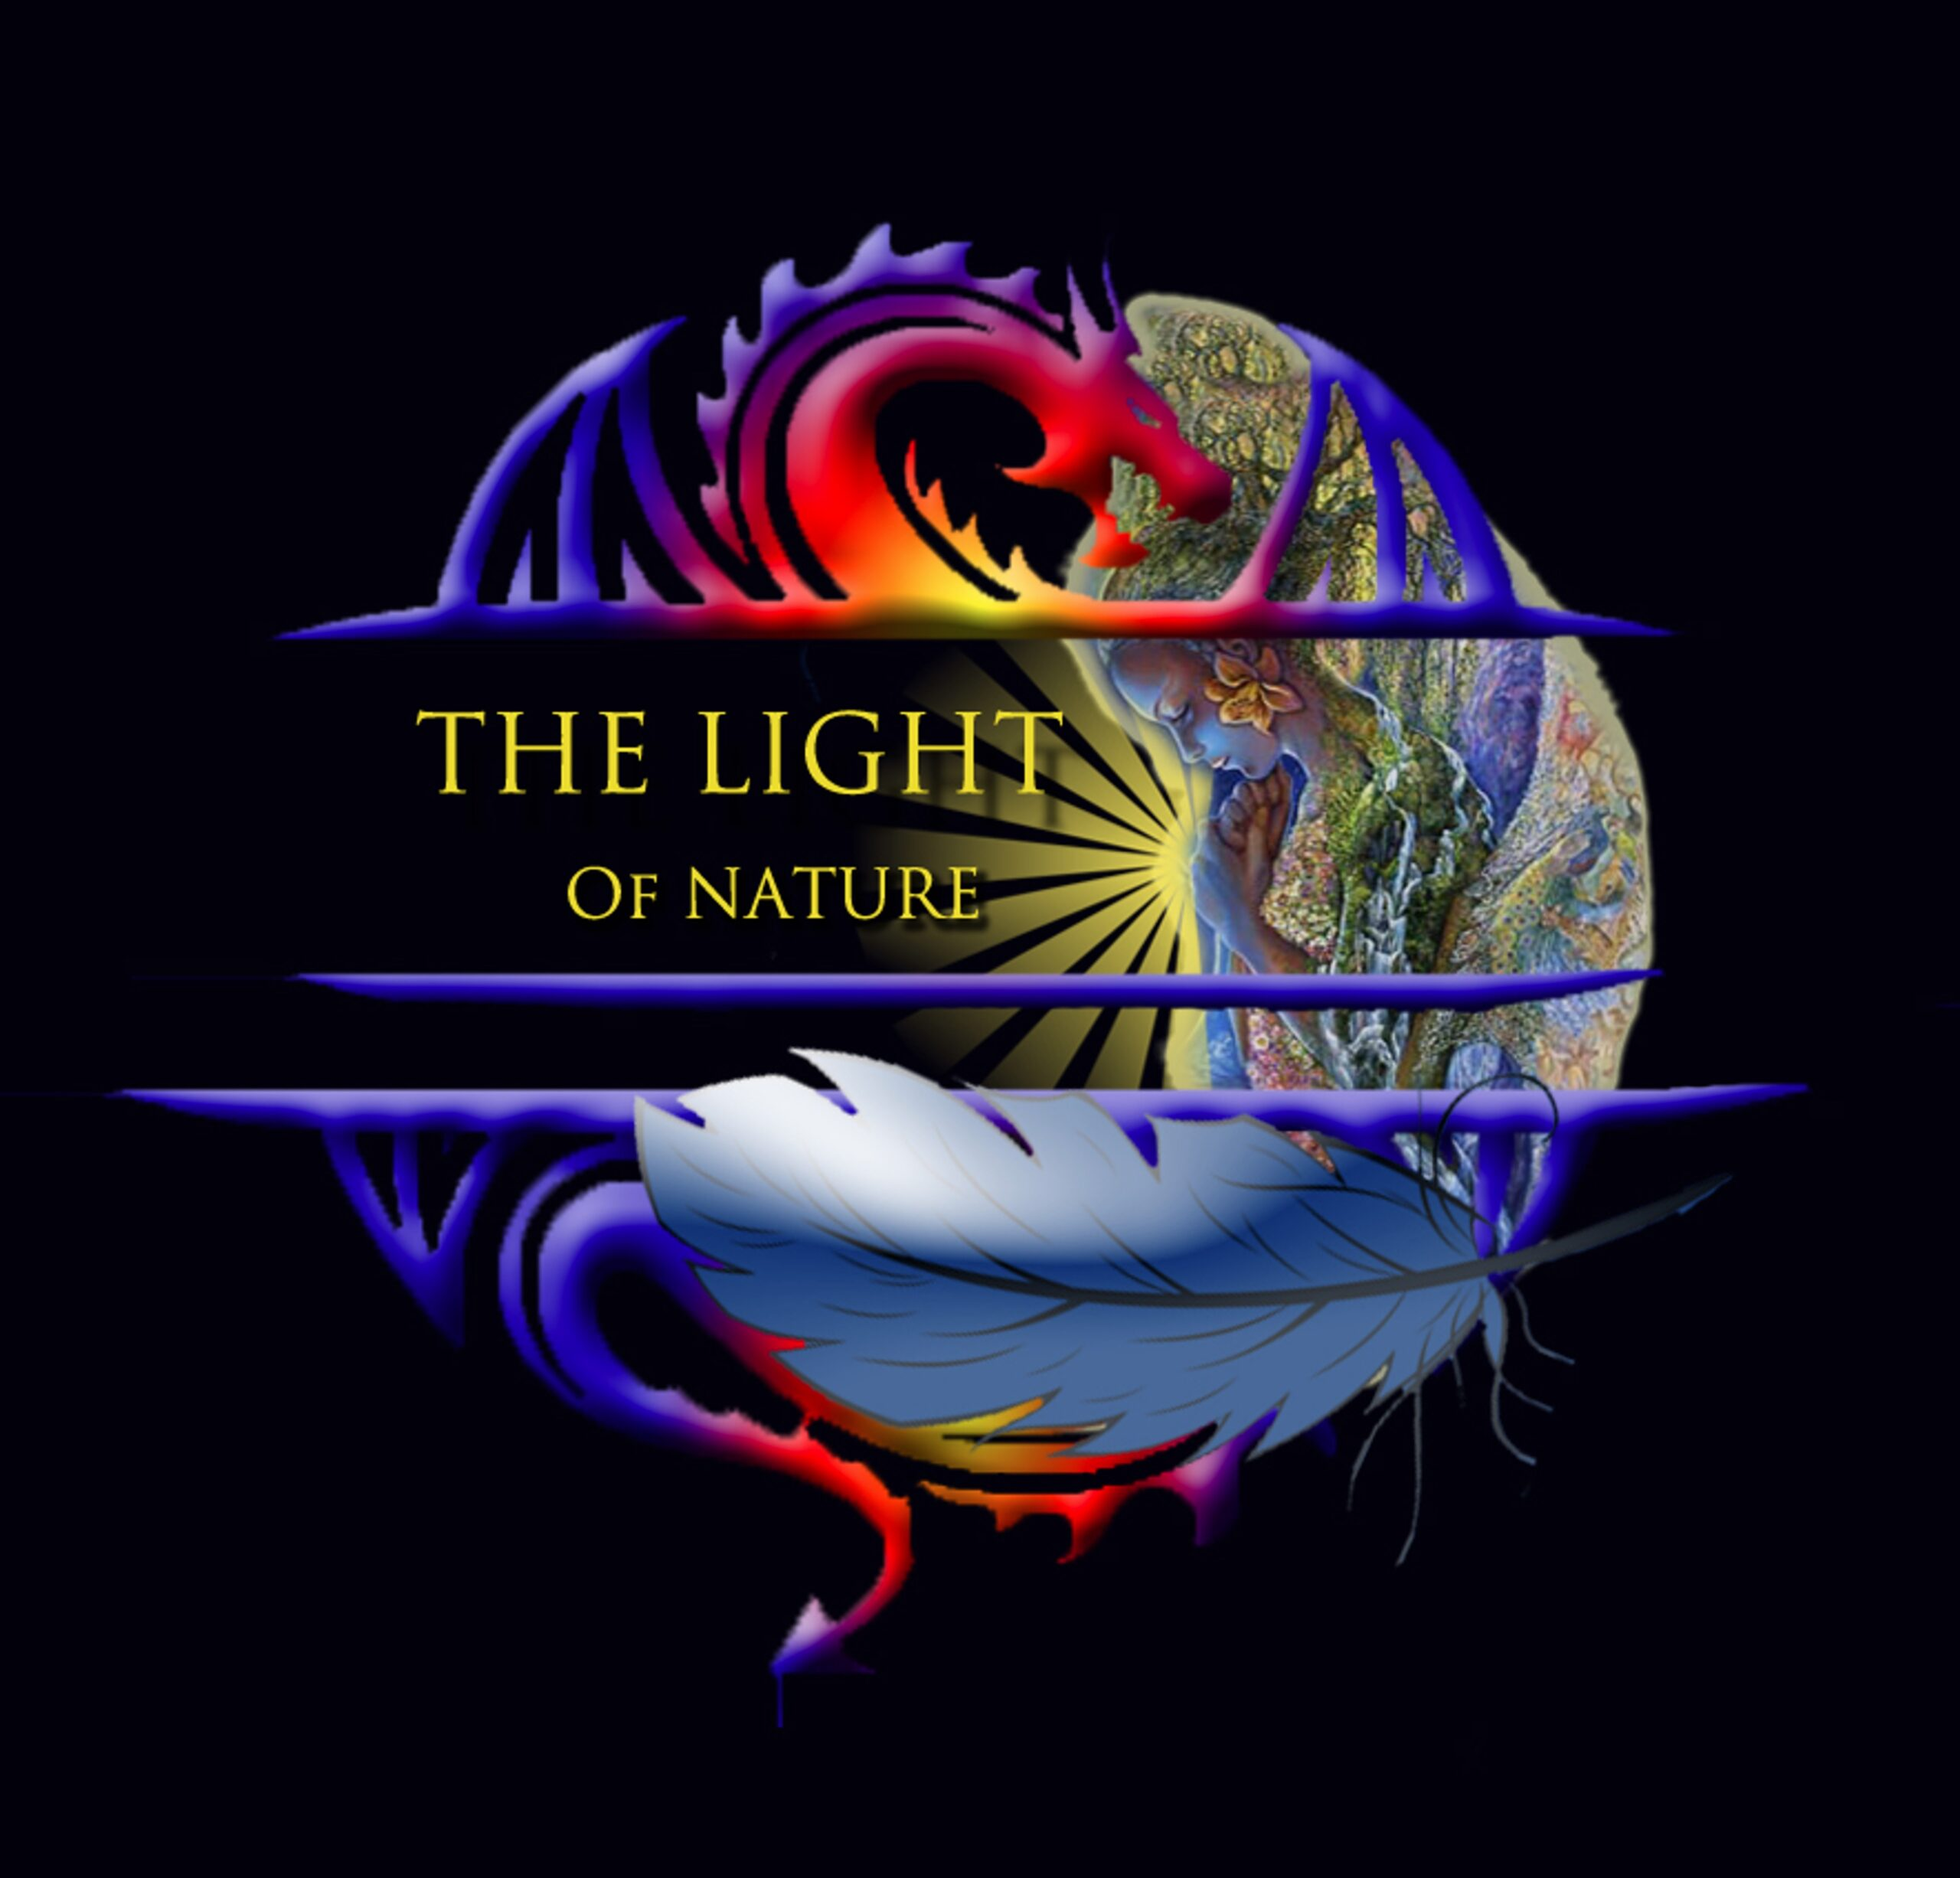 The Light Of Nature